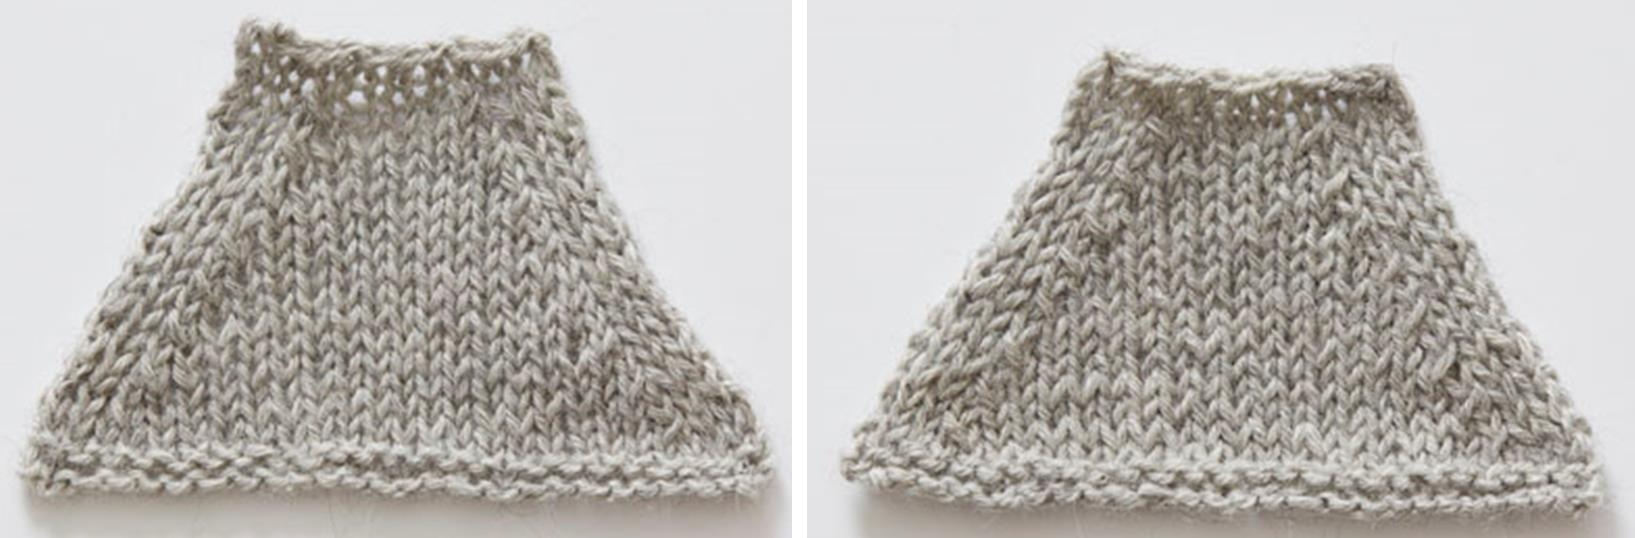 Learn the difference between two popular kinds of knitting decreases here.